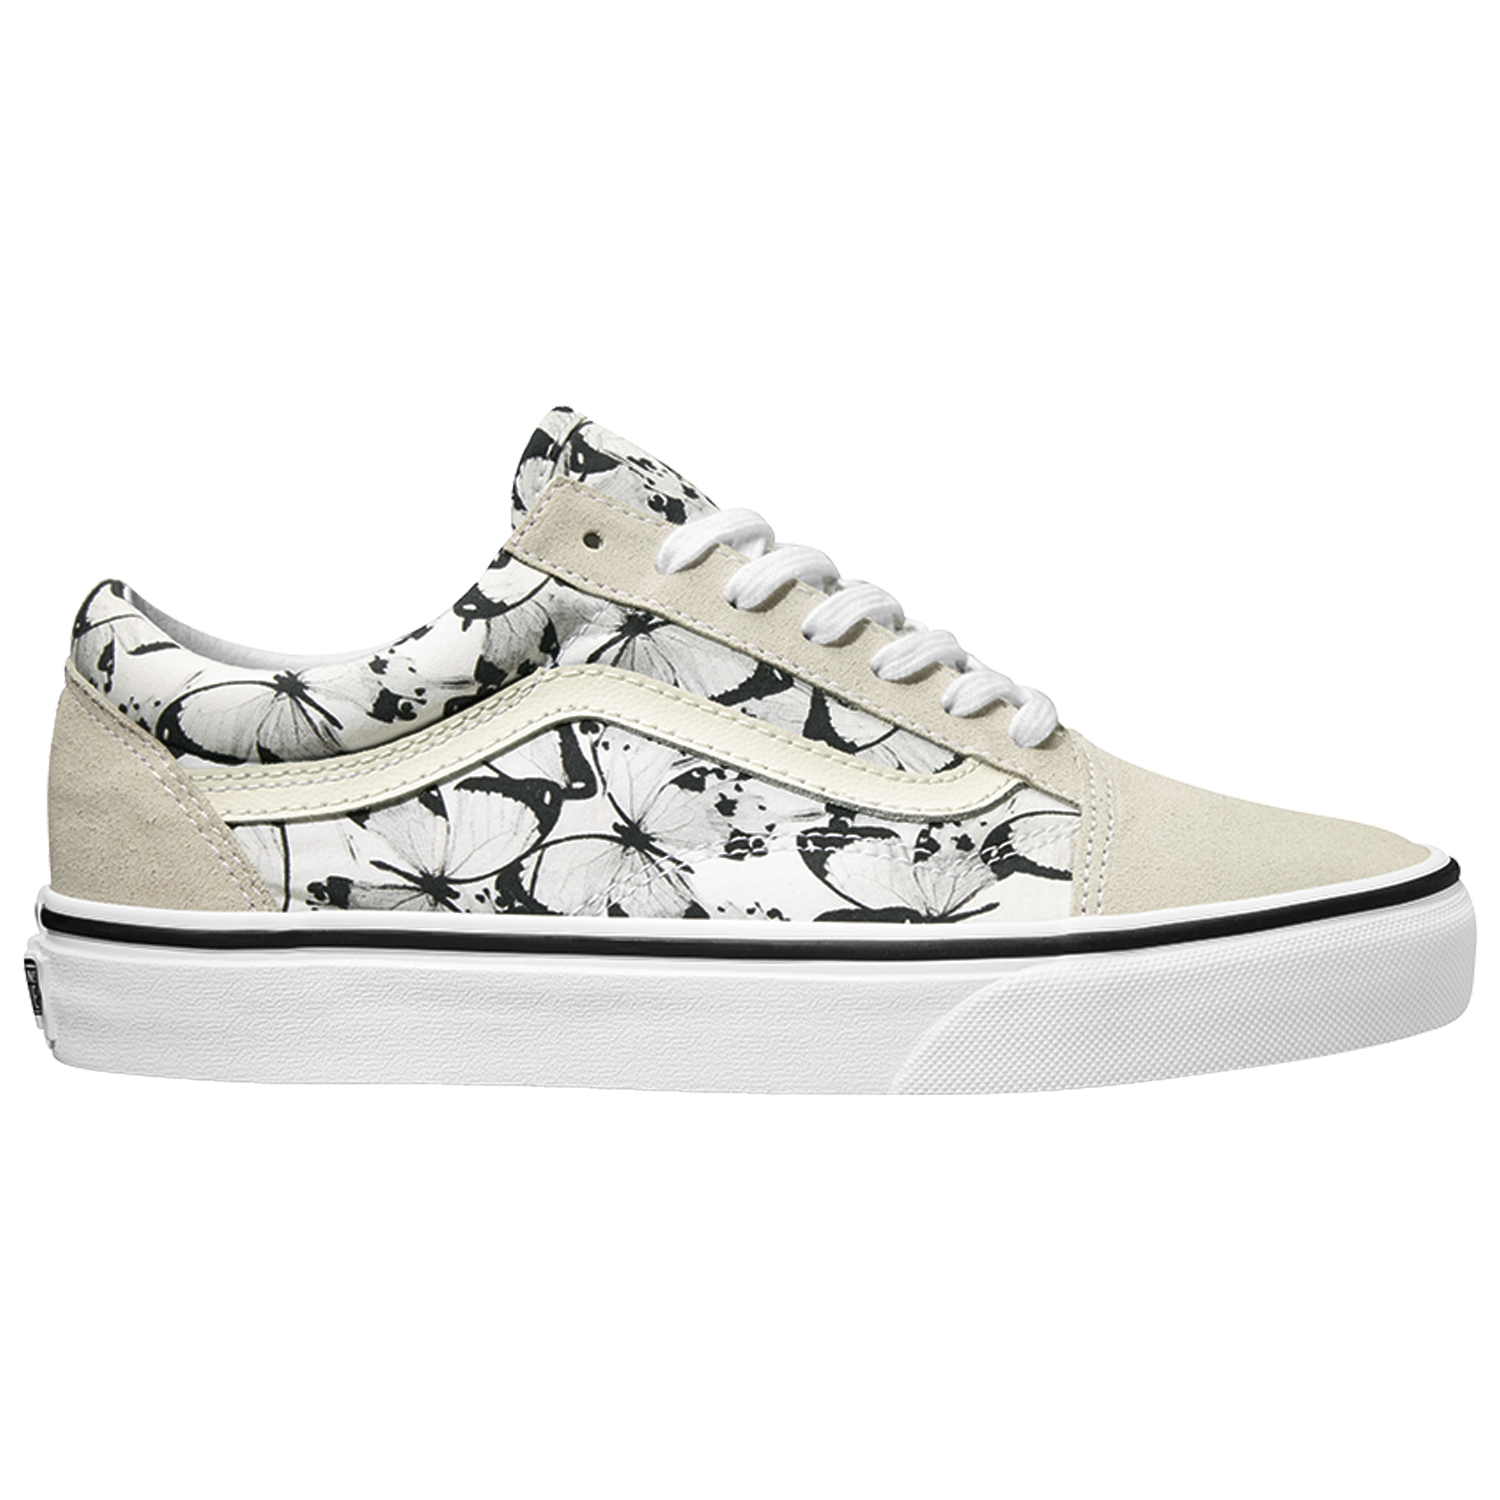 vans-old-skool-butterfly-true-white-black-149-90